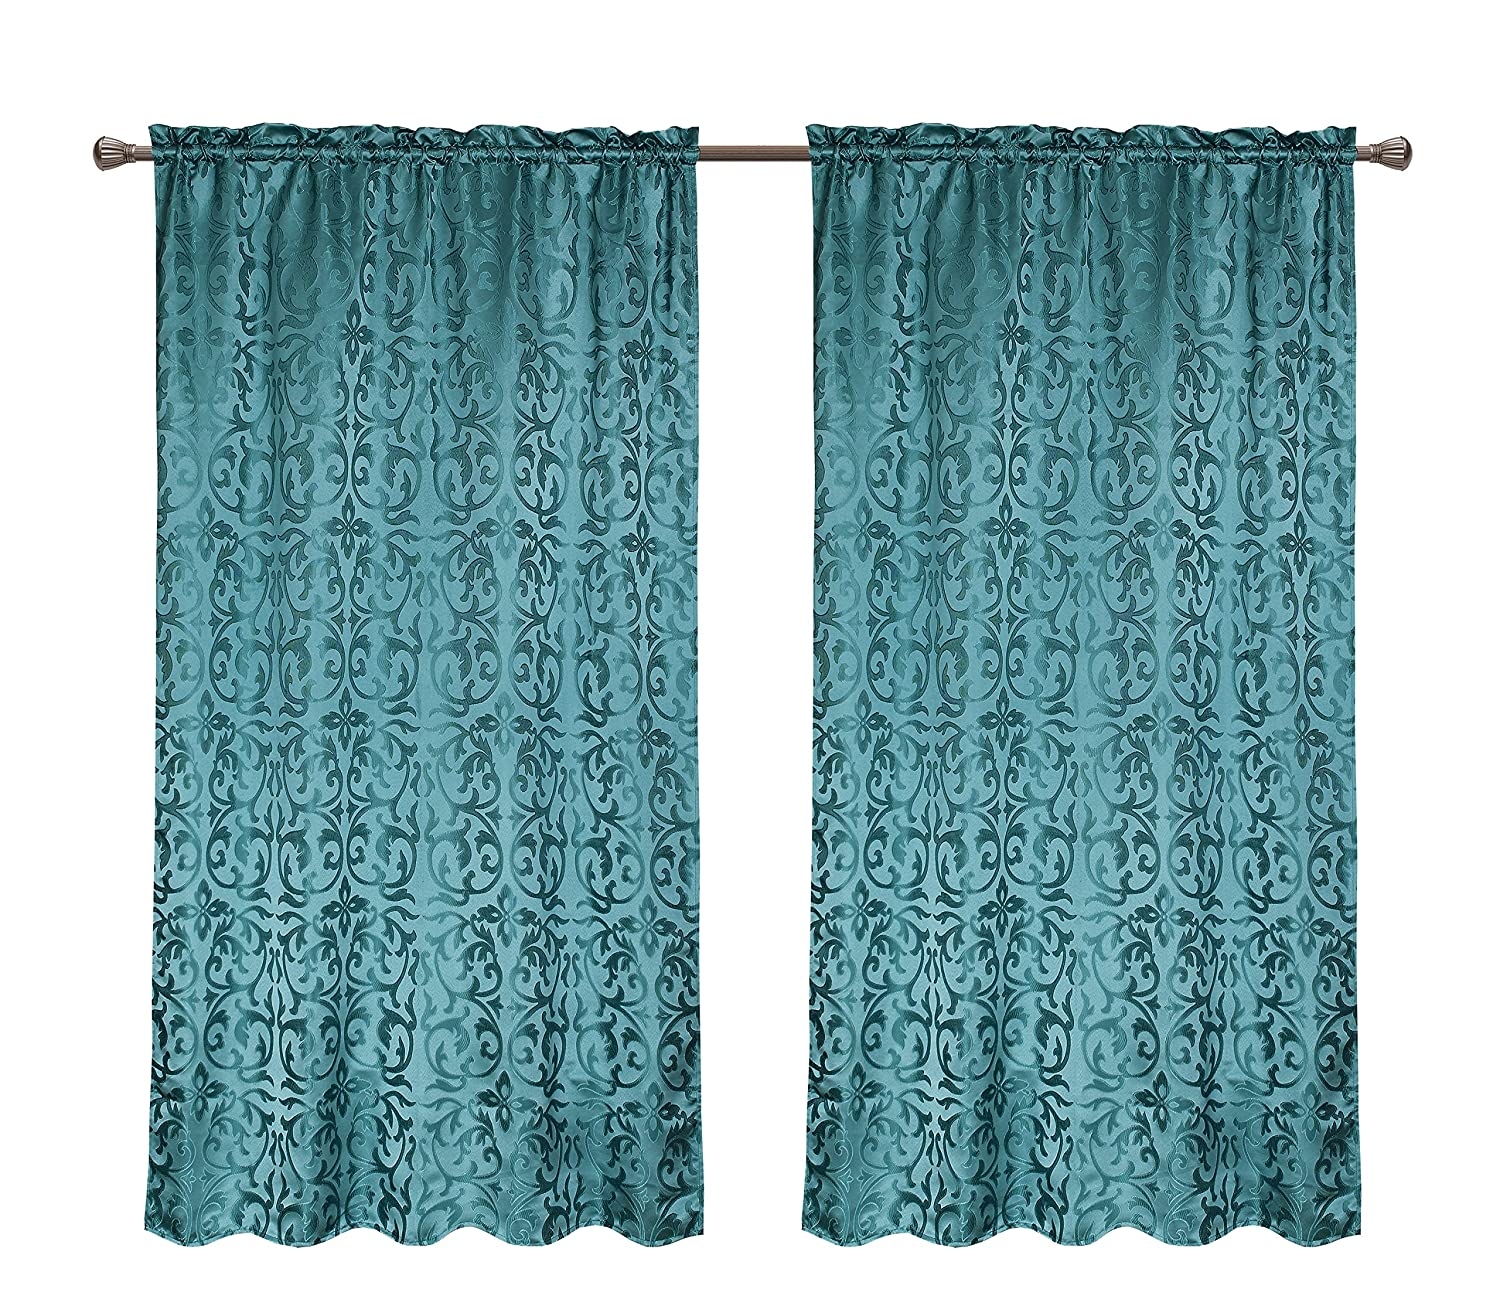 Pack 2 CaliTime Window Curtains Panels Damask Vintage Floral 56 X 84 Inches Teal